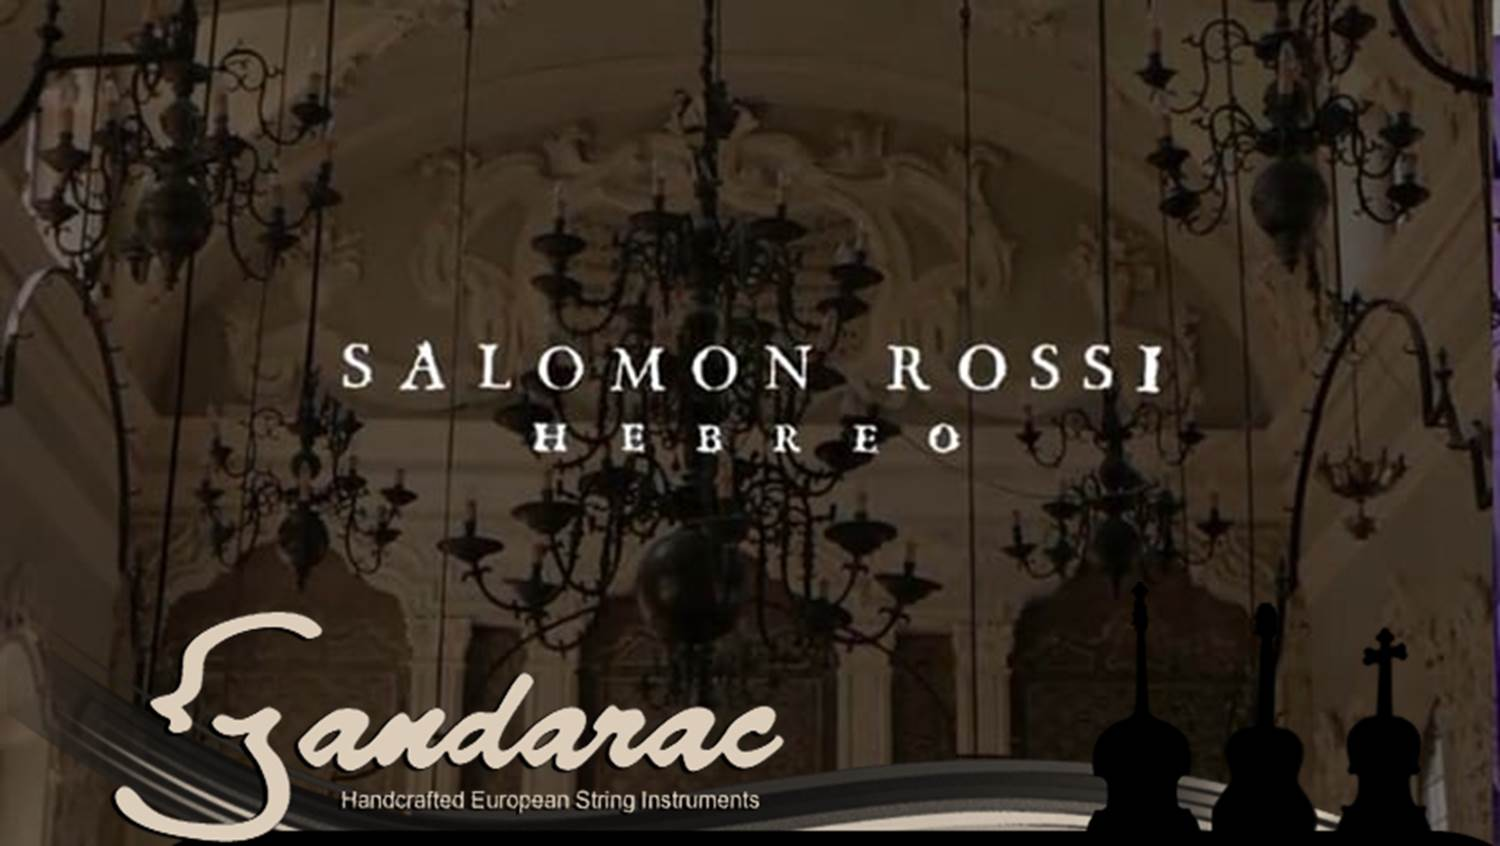 a biography of salamone rossi a jewish musician Buy salamone rossi, jewish musician in late renaissance mantua (oxford monographs on music) first edition by don harran (isbn: 9780198162711) from amazon's book store.